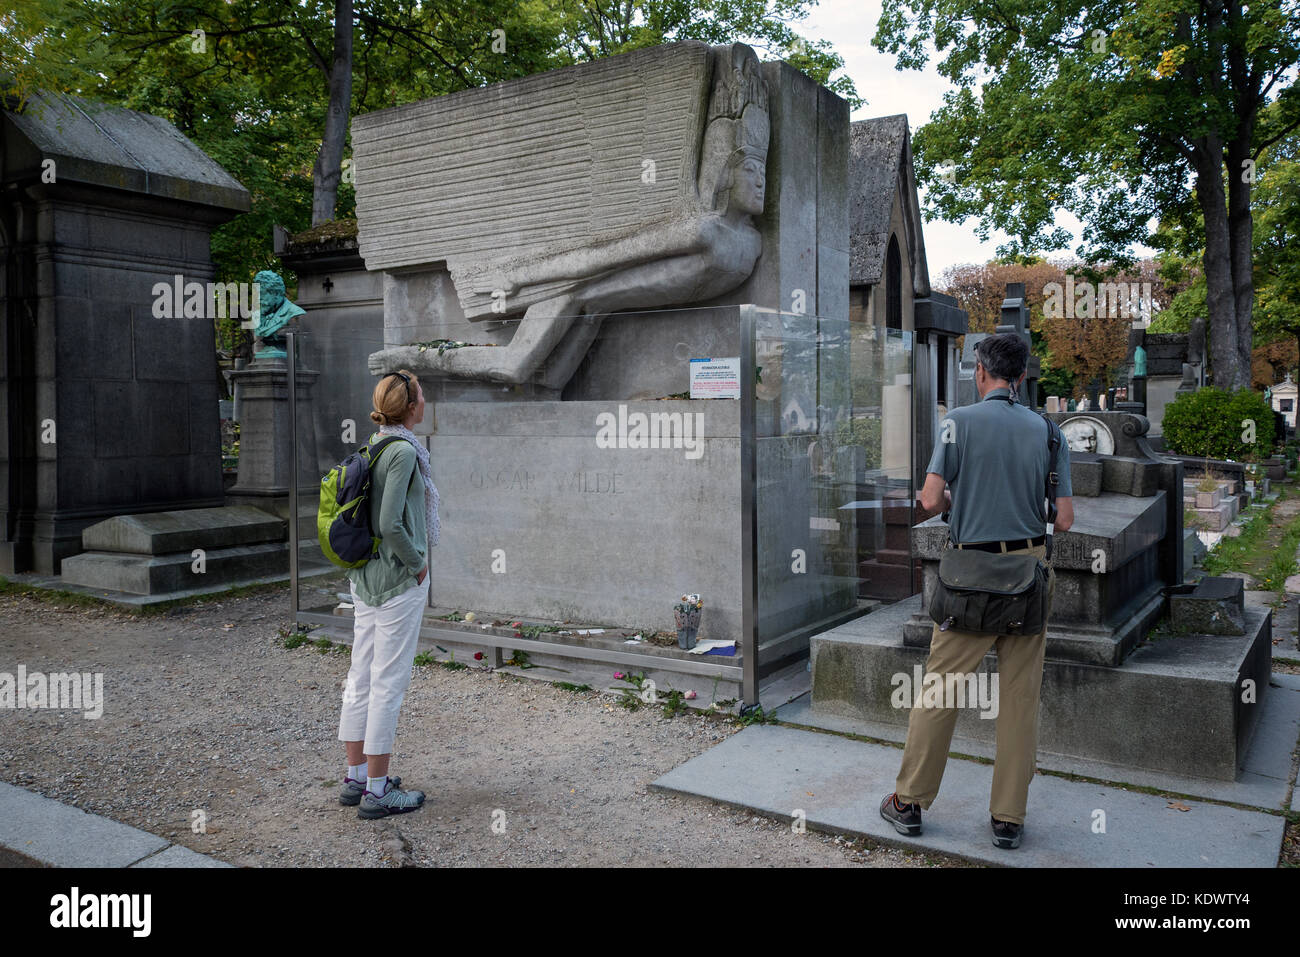 Tourists visit the grave of Oscar Wilde in Pere Lachaise cemetery in Paris, France. - Stock Image